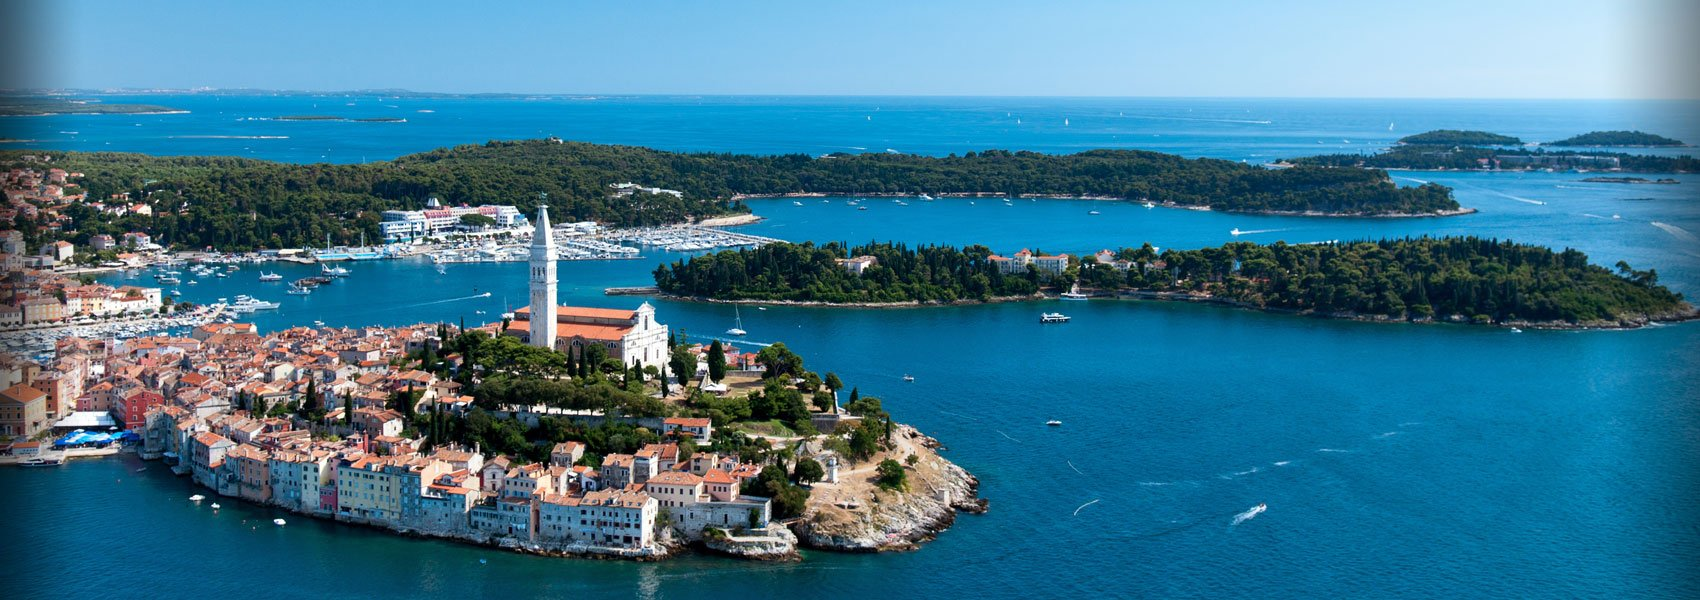 Rovinj - one of the most picturesque towns in the Mediterranean...